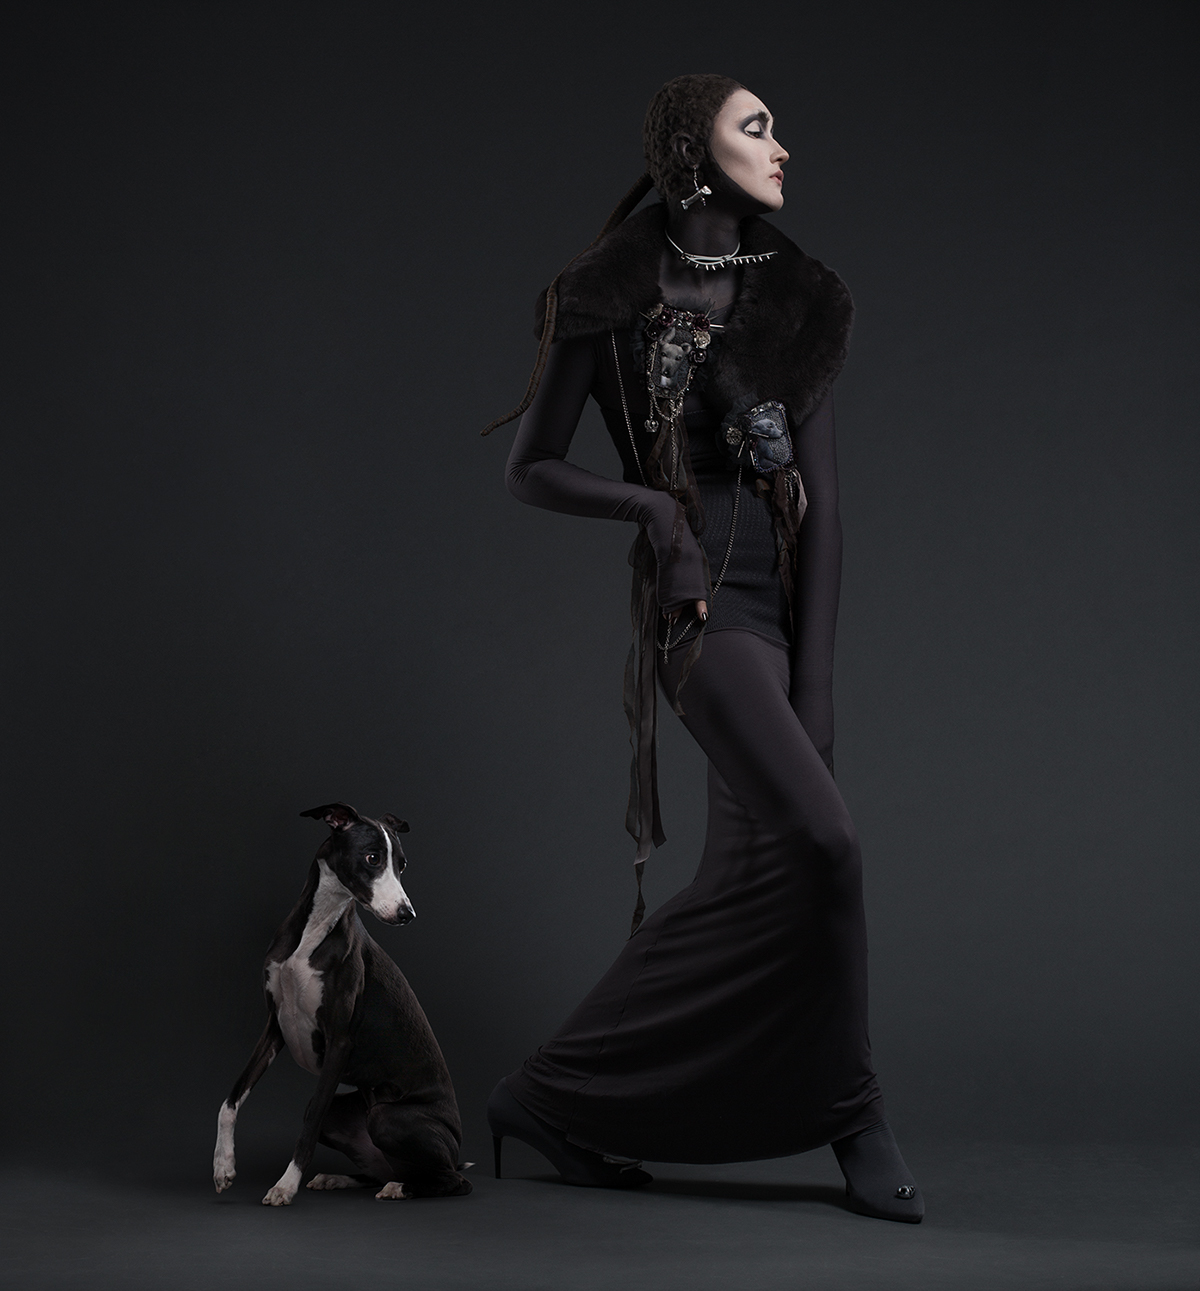 dogs dogs in fashion Style fashion design Costume Design  art make-up face-art